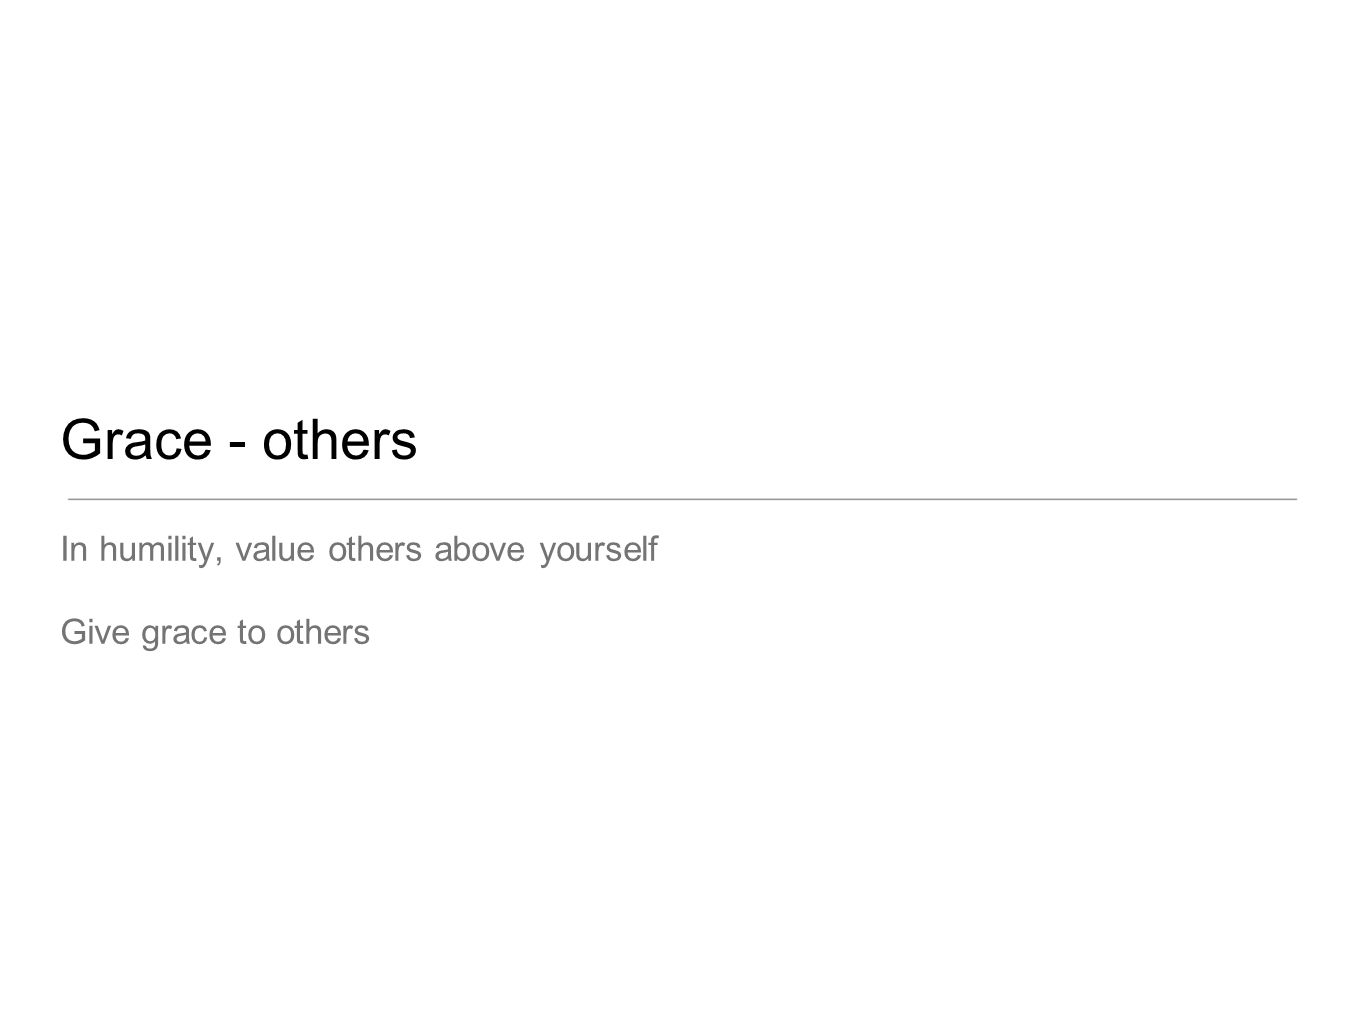 Grace - others In humility, value others above yourself Give grace to others